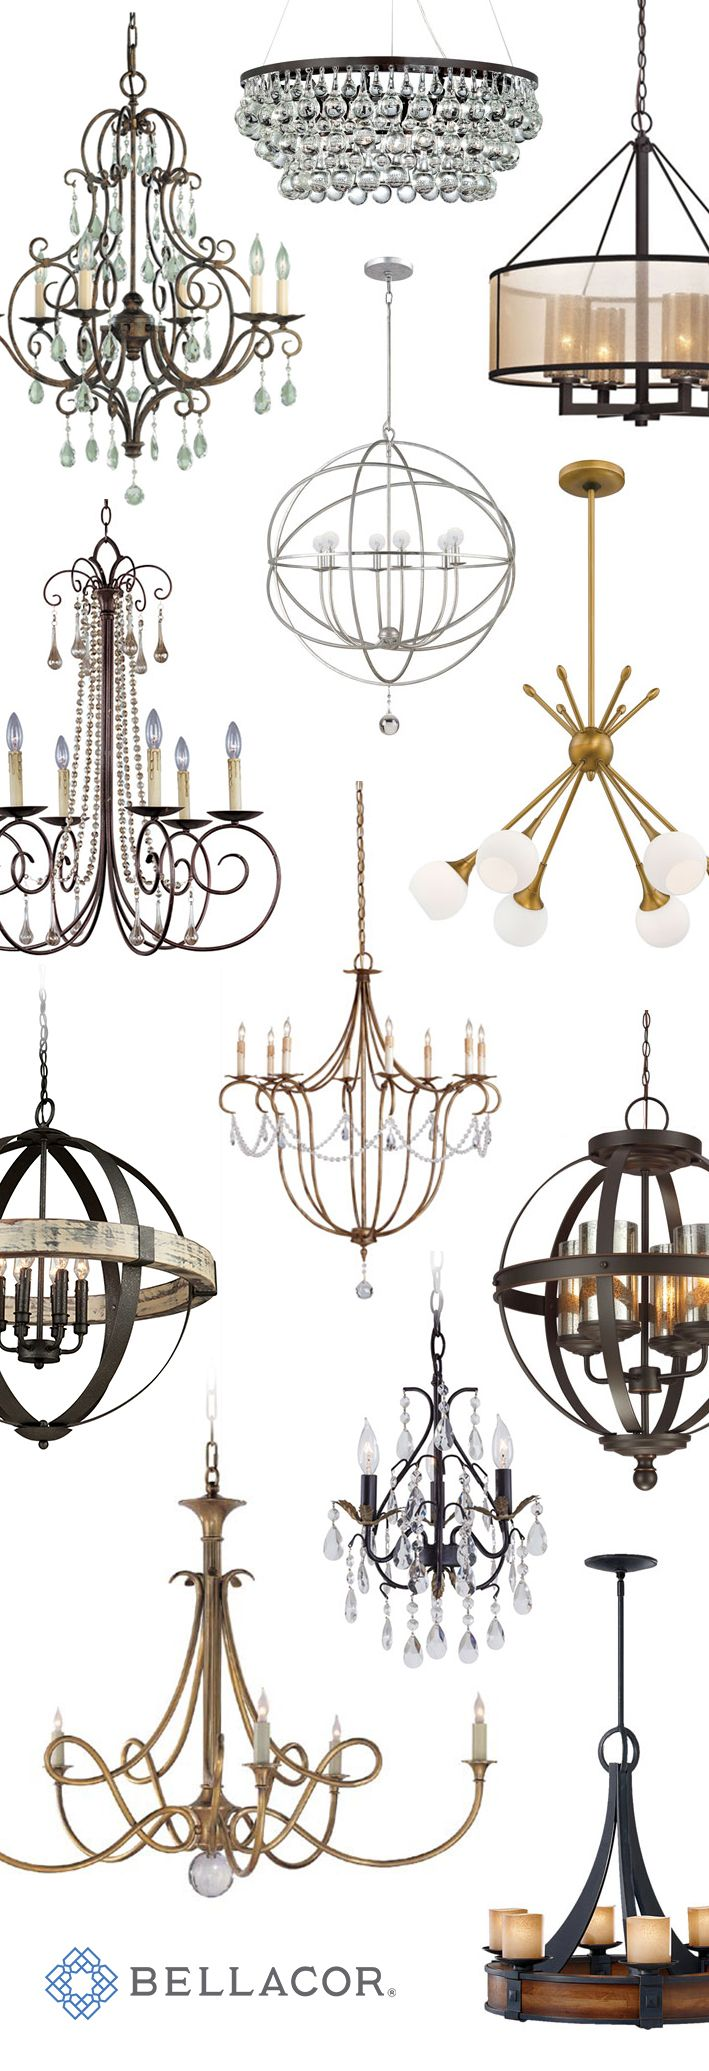 A chandelier from bellacor can make a great focal point in your a chandelier from bellacor can make a great focal point in your space at up arubaitofo Choice Image